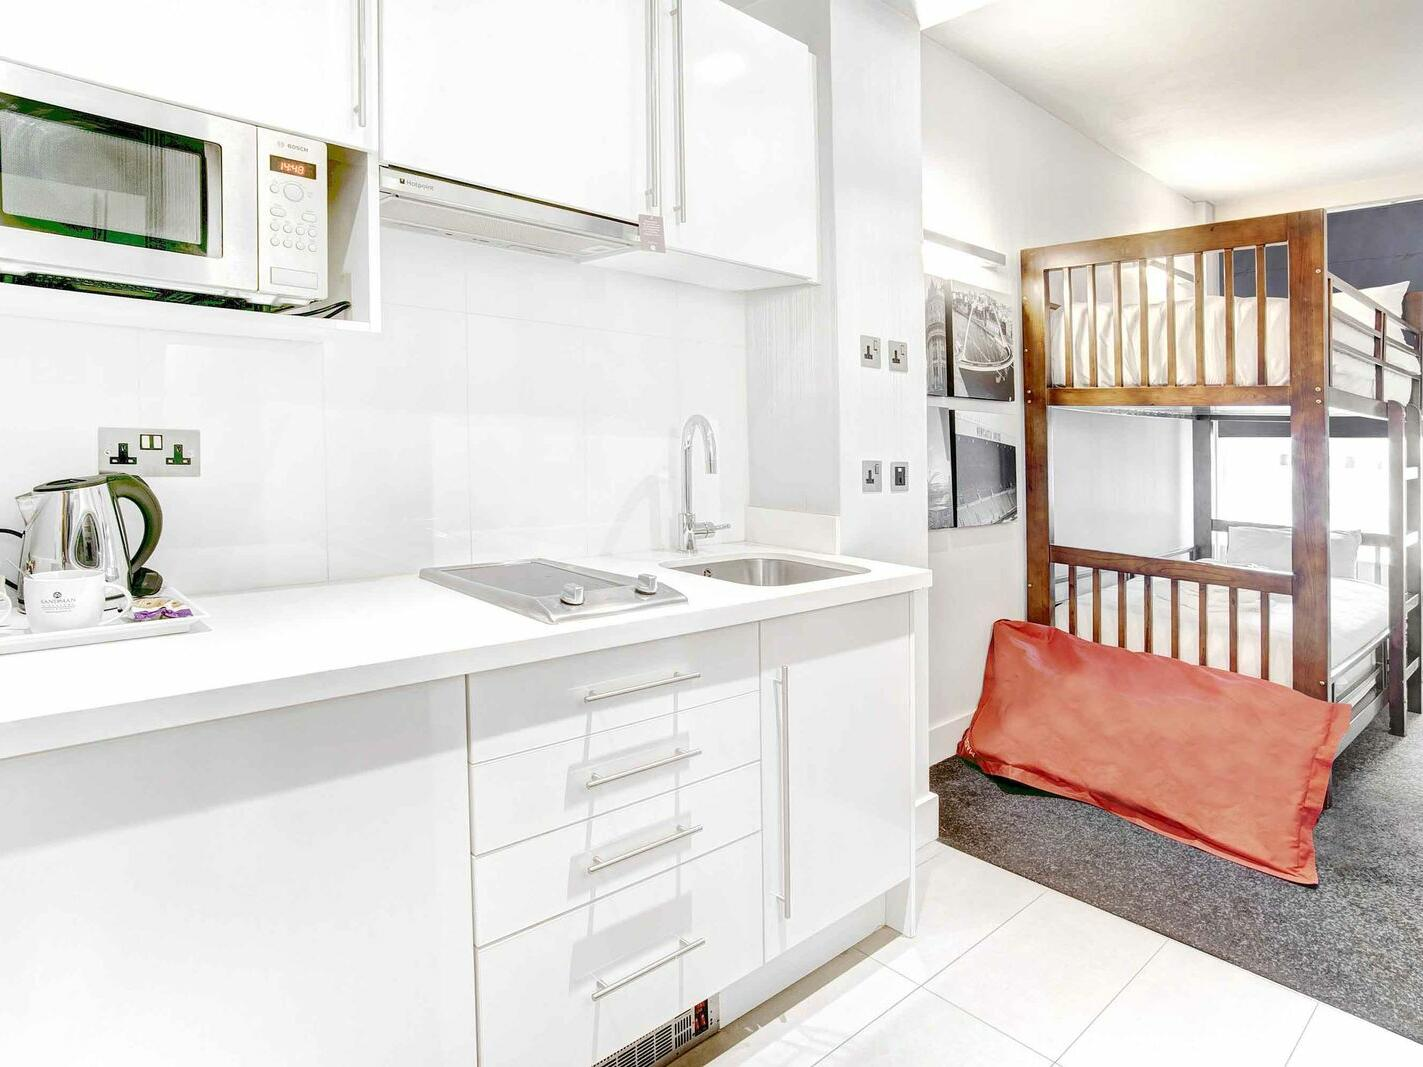 The Family King Suite at Sandman Signature Newcastle Hotel with two bunk beds and a pantry with kitchen supplies and white pantry cupboards